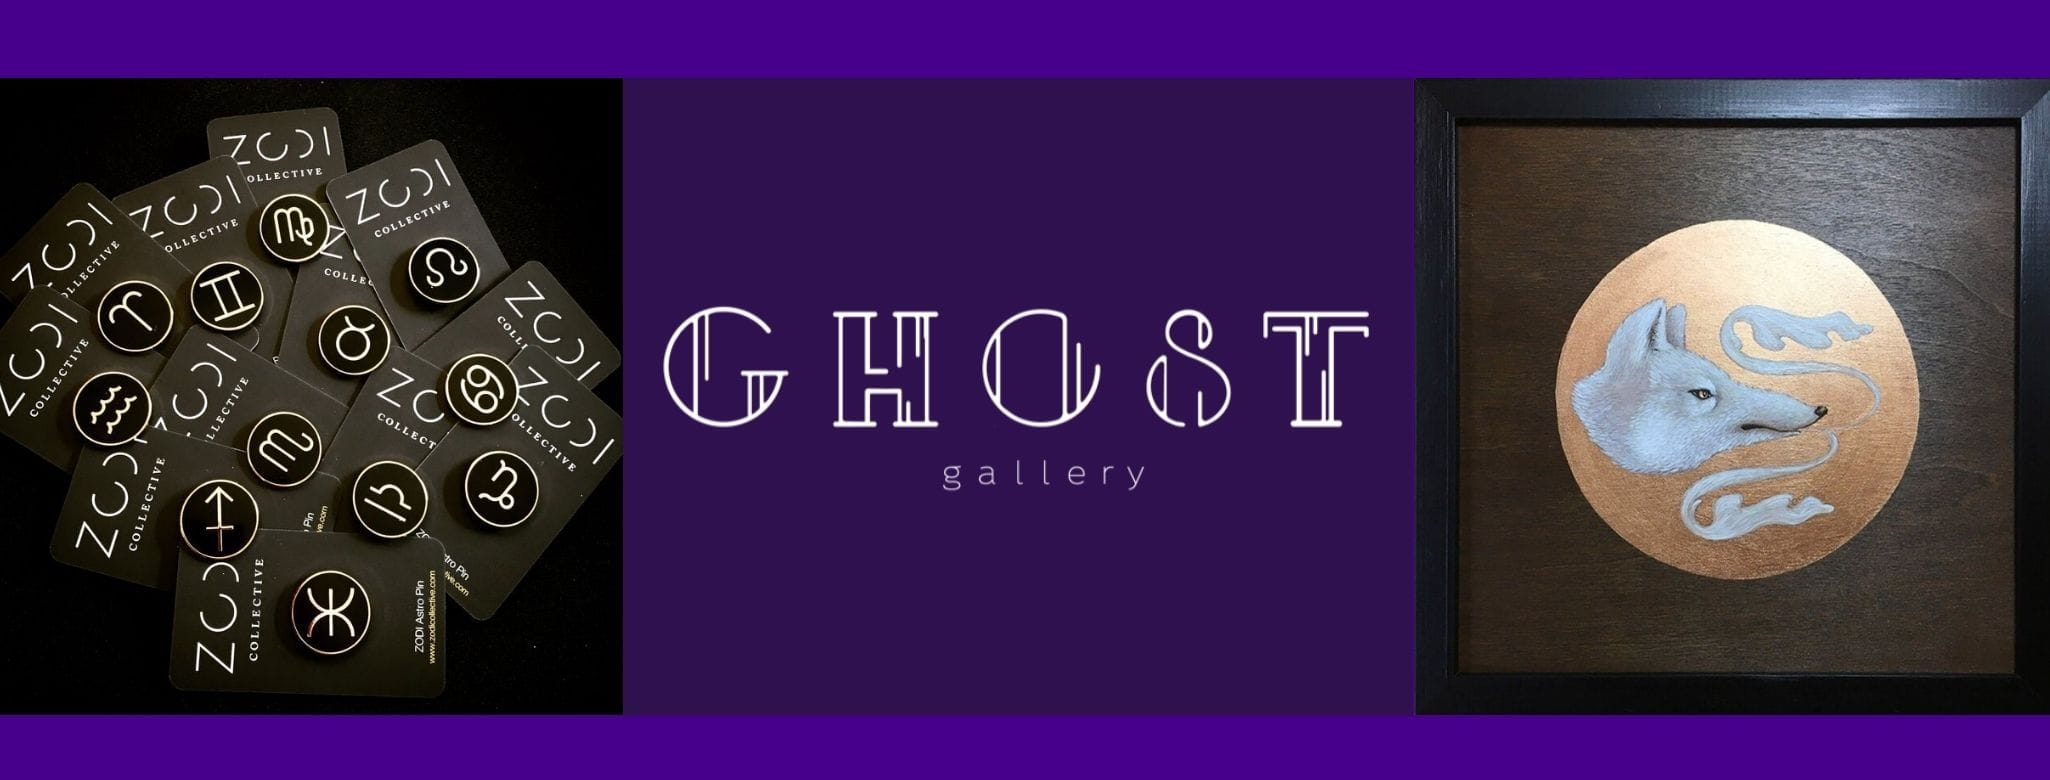 Ghost gallery Seattle Gift Guide